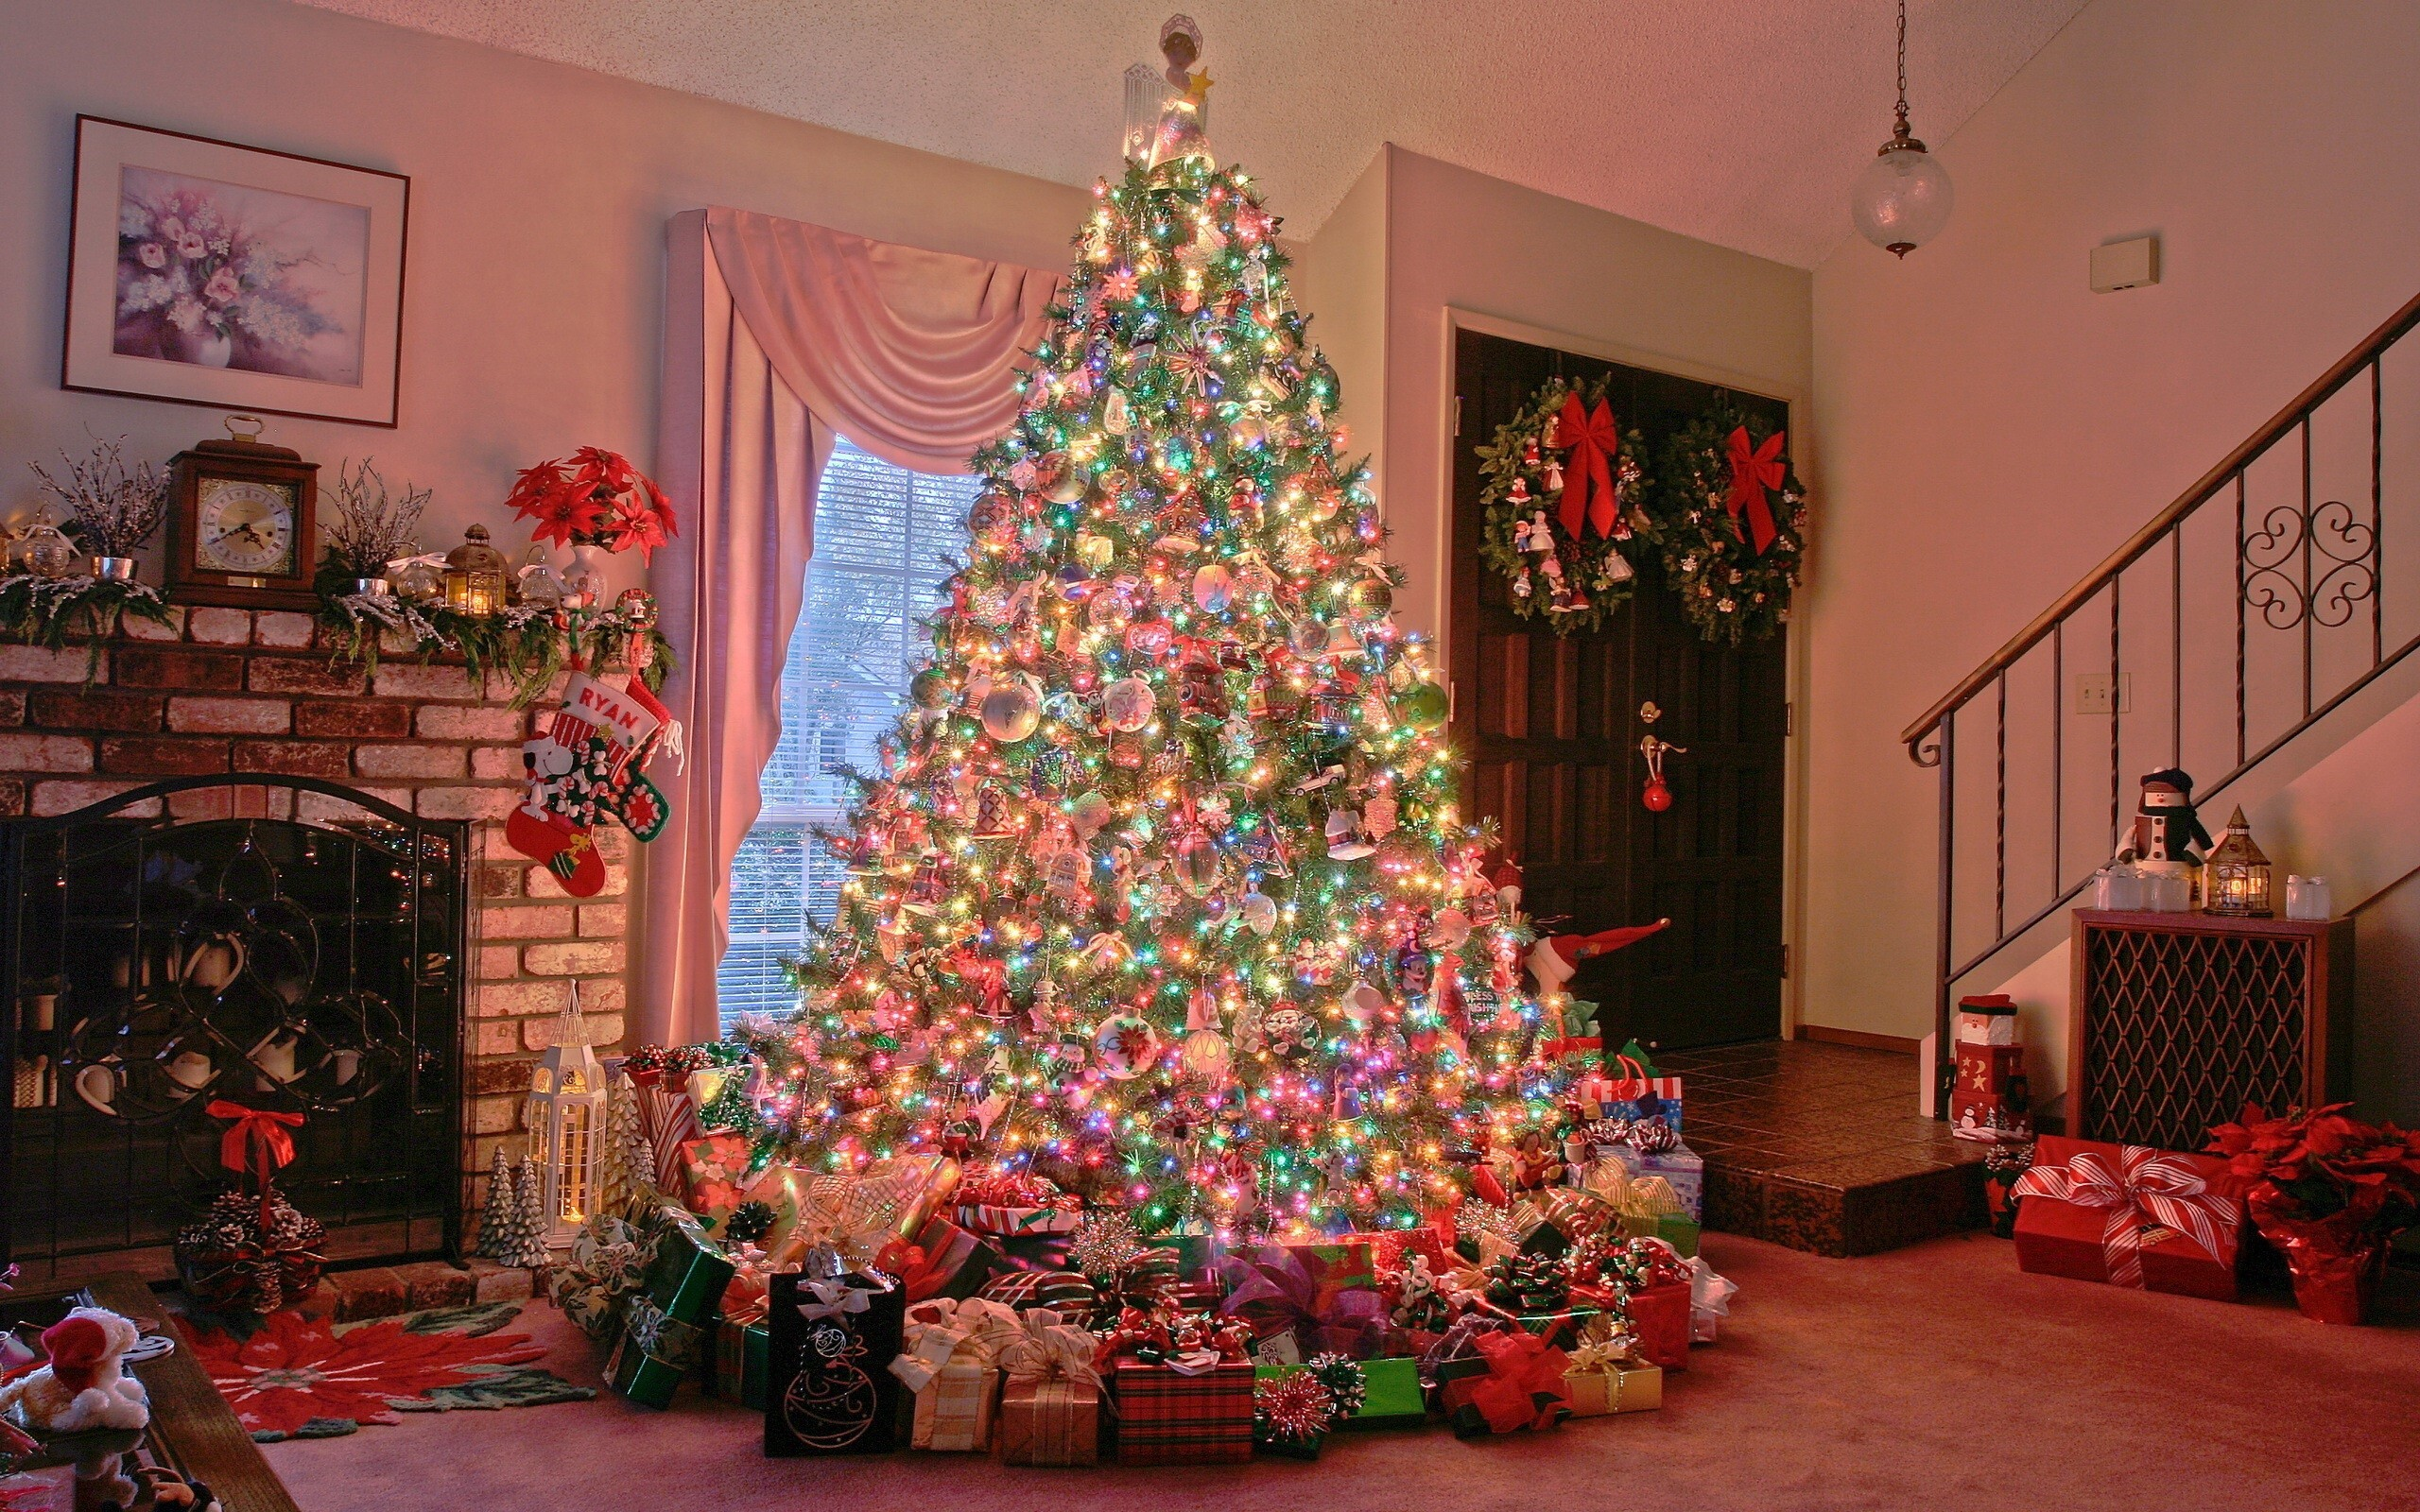 photos of beautiful big christmas tree on holidays hd wallpapers - How To Decorate A Big Christmas Tree